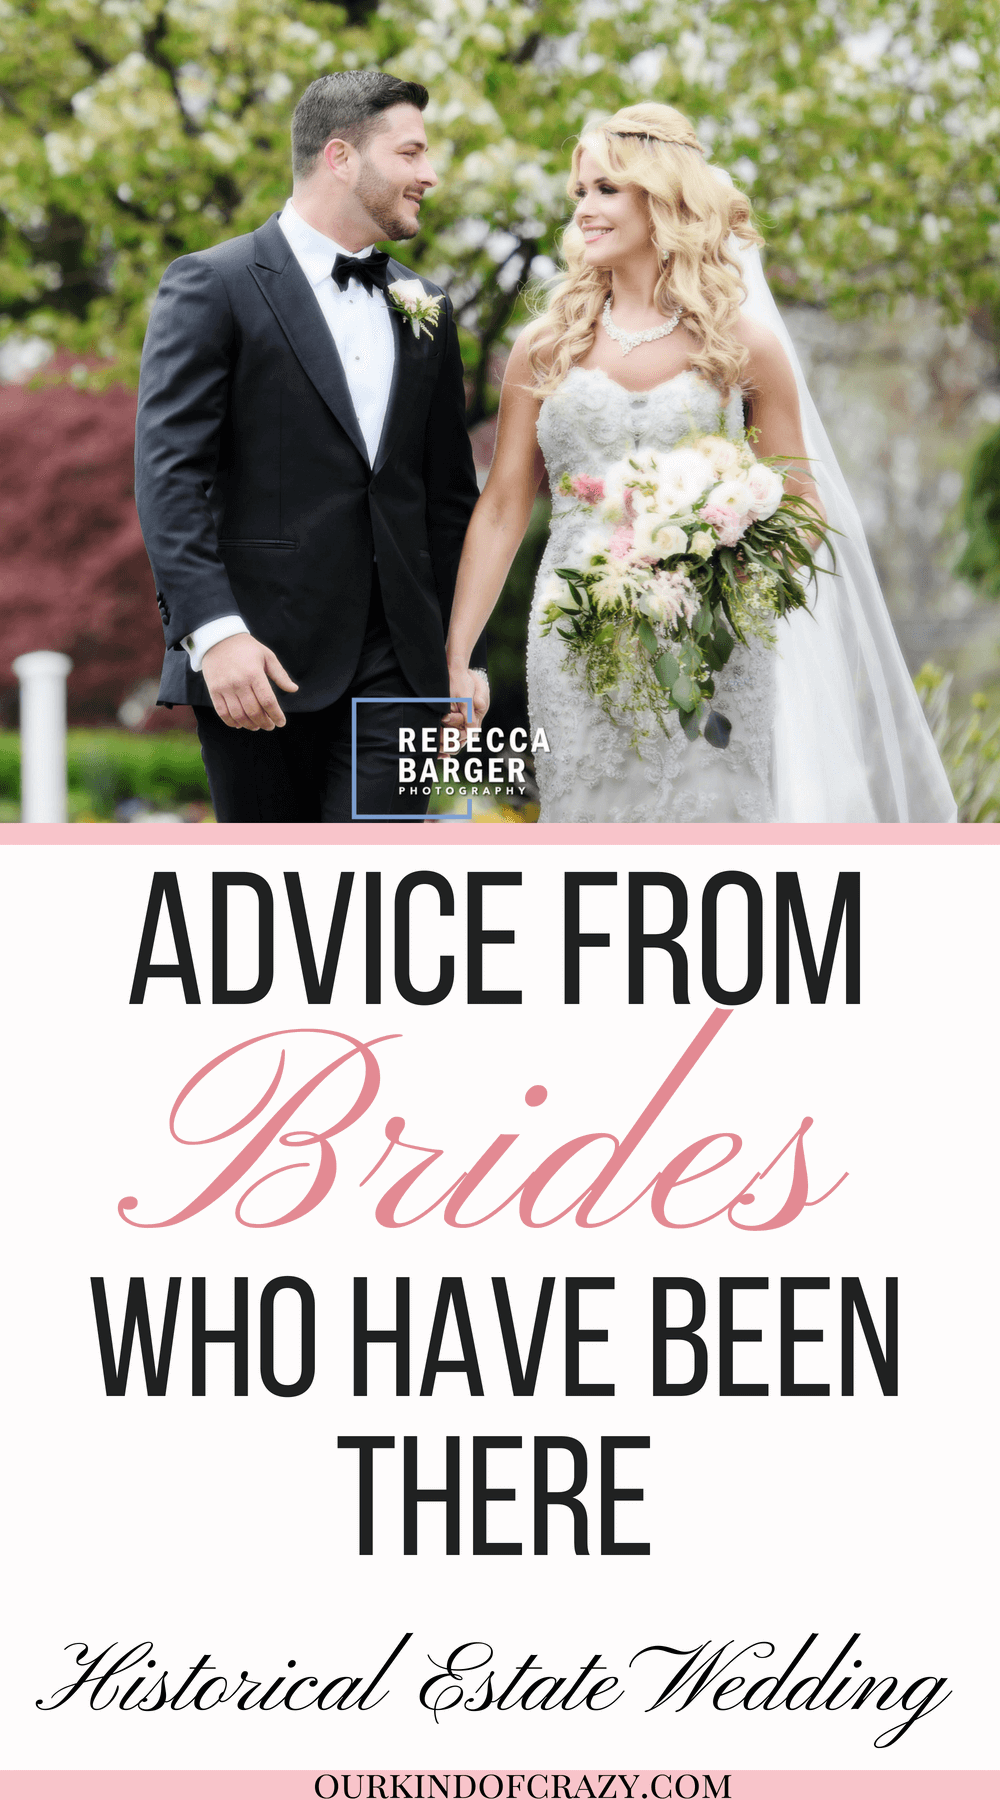 Wedding Advice from Brides who have been there